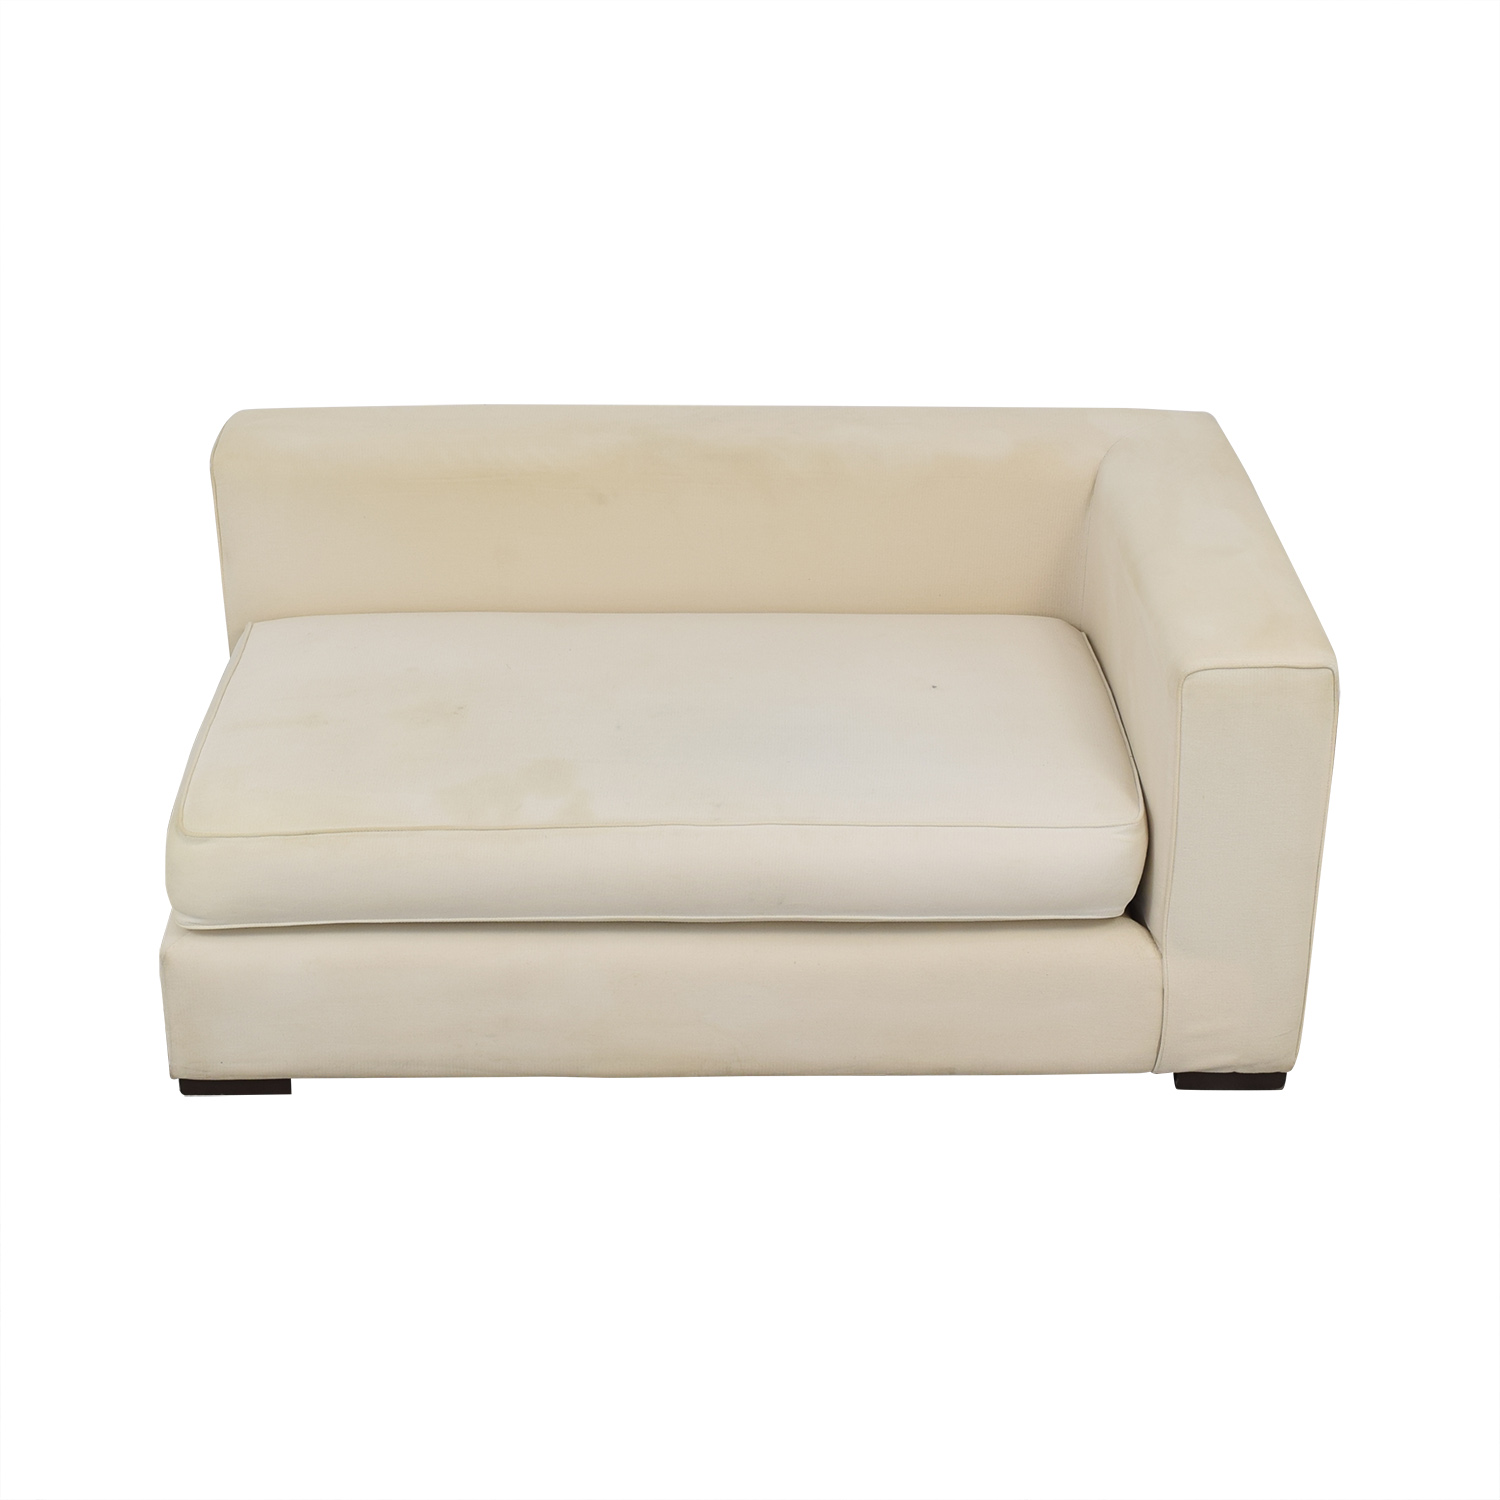 West Elm West Elm Modern Chaise Lounge for sale